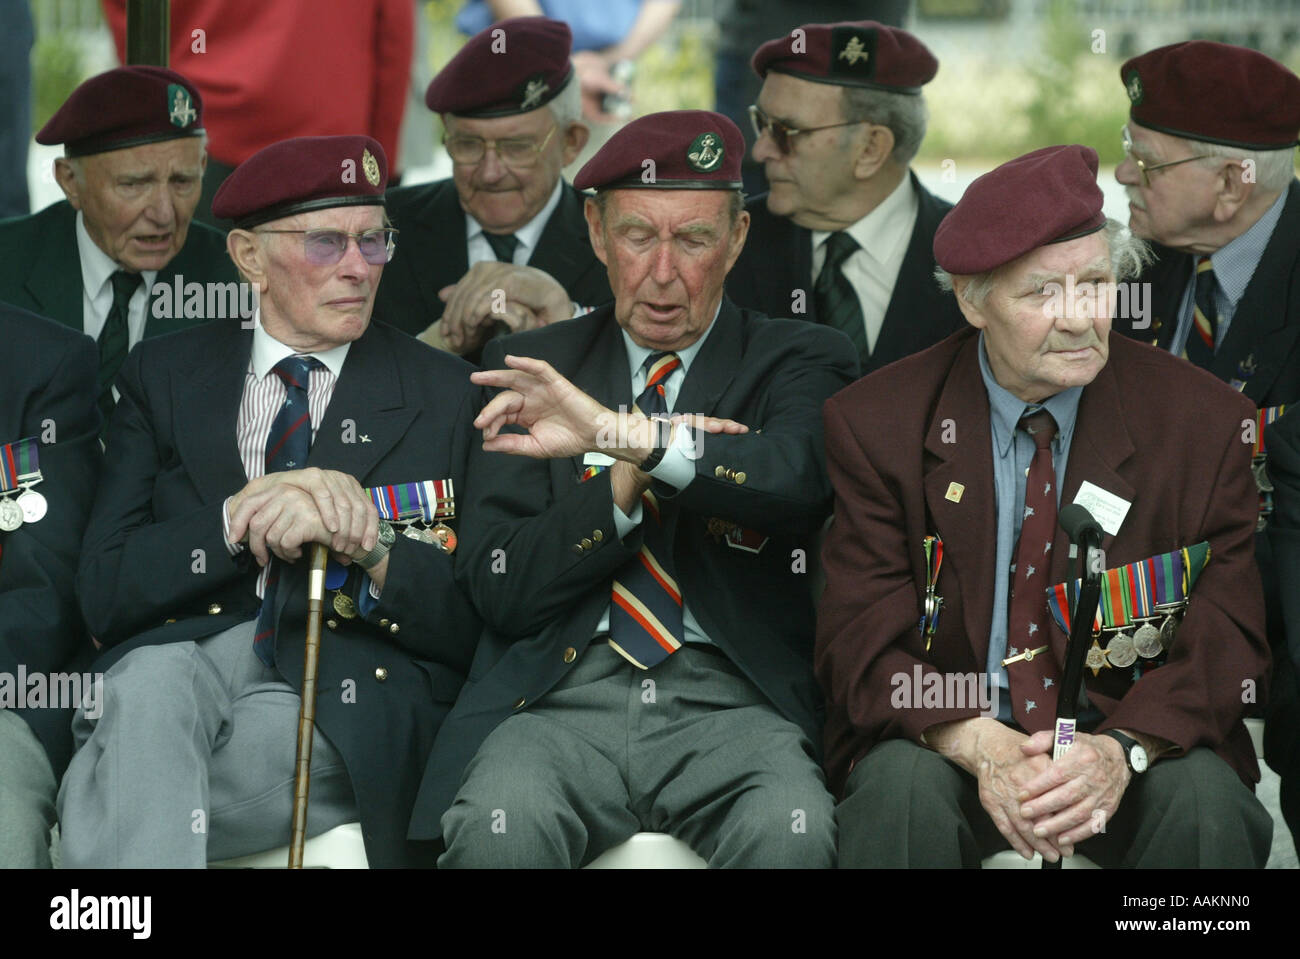 A Second World War Veteran checks his watch to see the time as they wait at events to mark the 60th Anniversary of D-Day, France - Stock Image